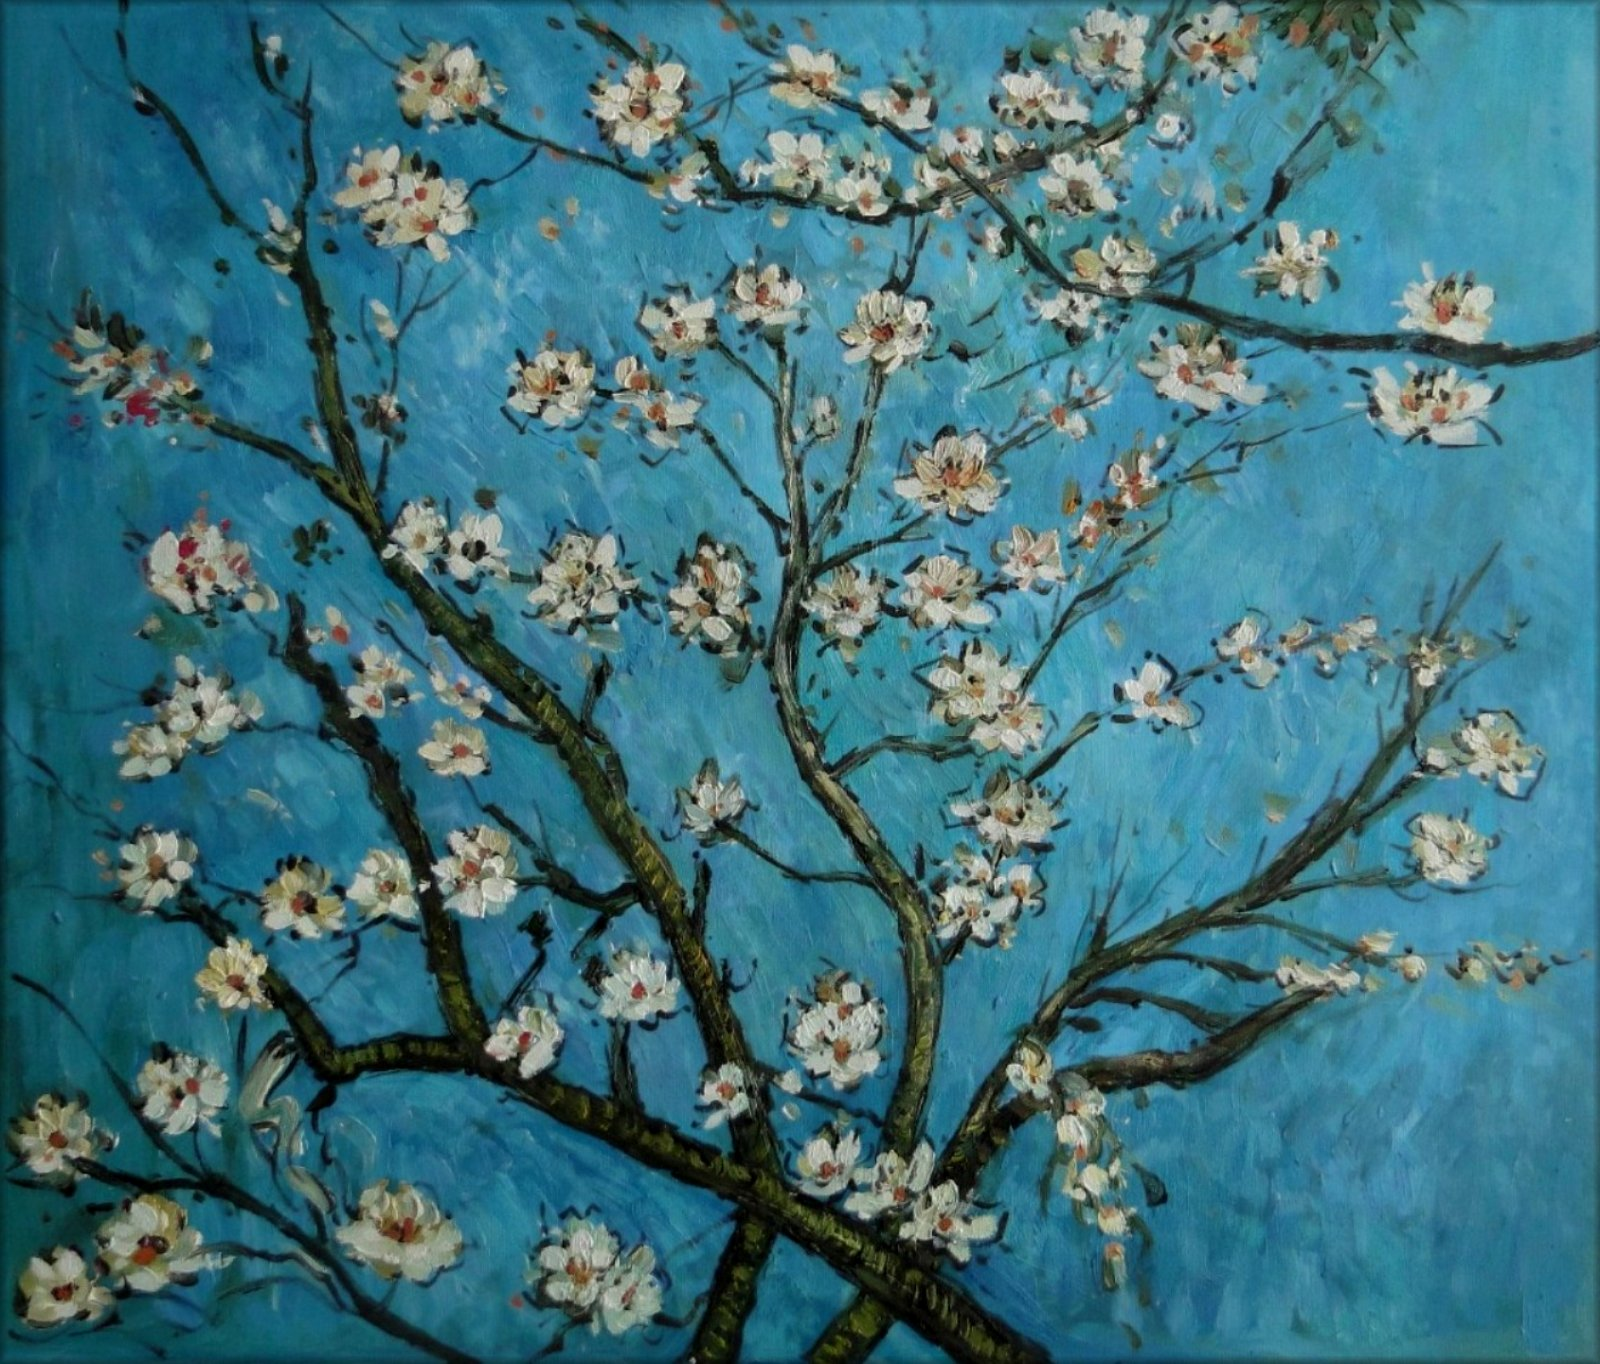 Framed, Van Gogh Almond Blossom Repro, Hand Painted Oil ...